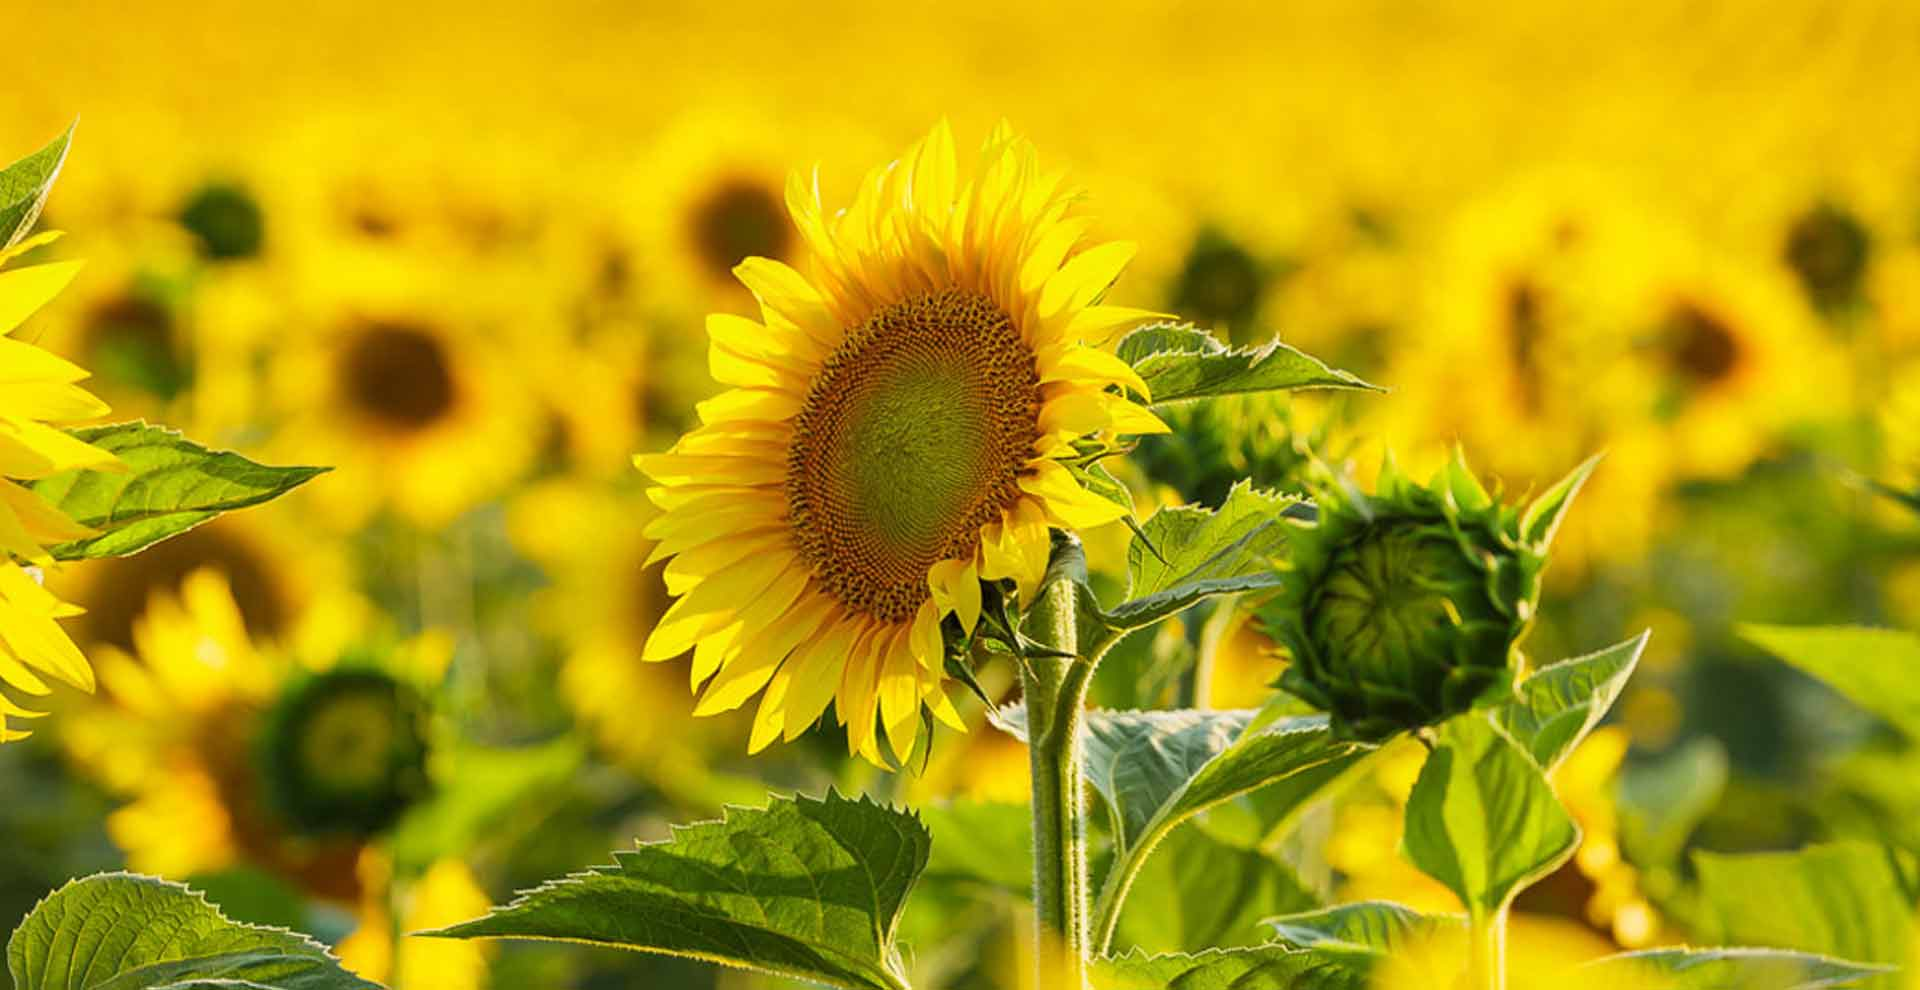 Sunflower crops